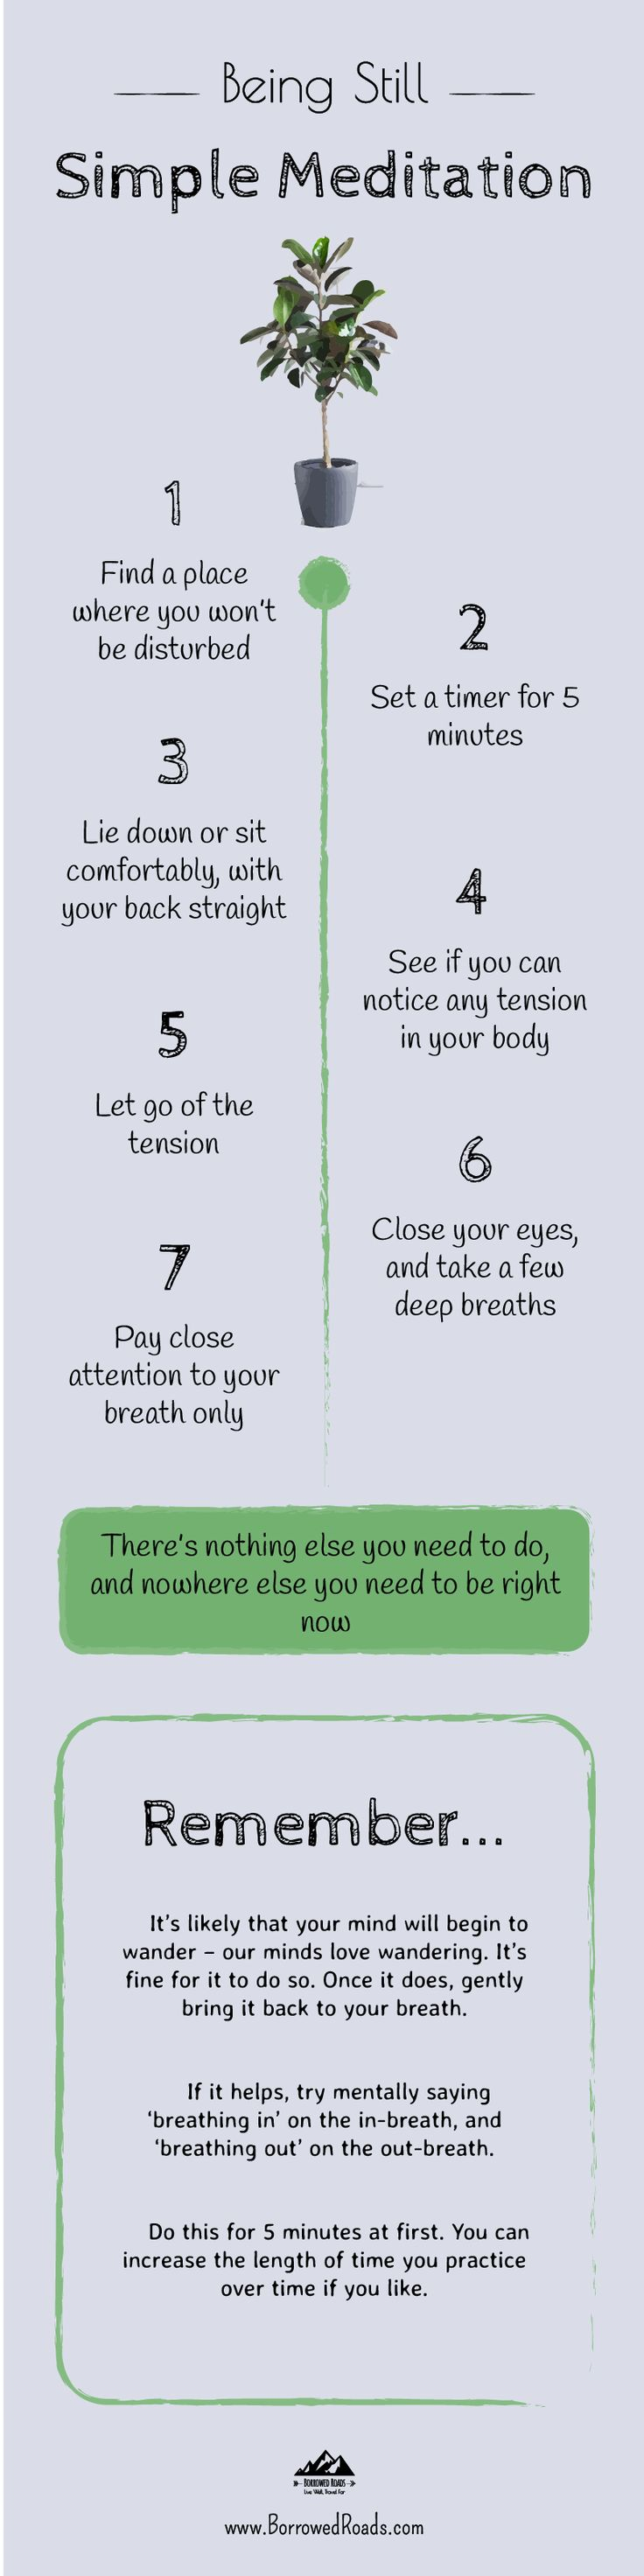 A simple #meditation guide from Borrowed Roads. #mindfulness #calm #still